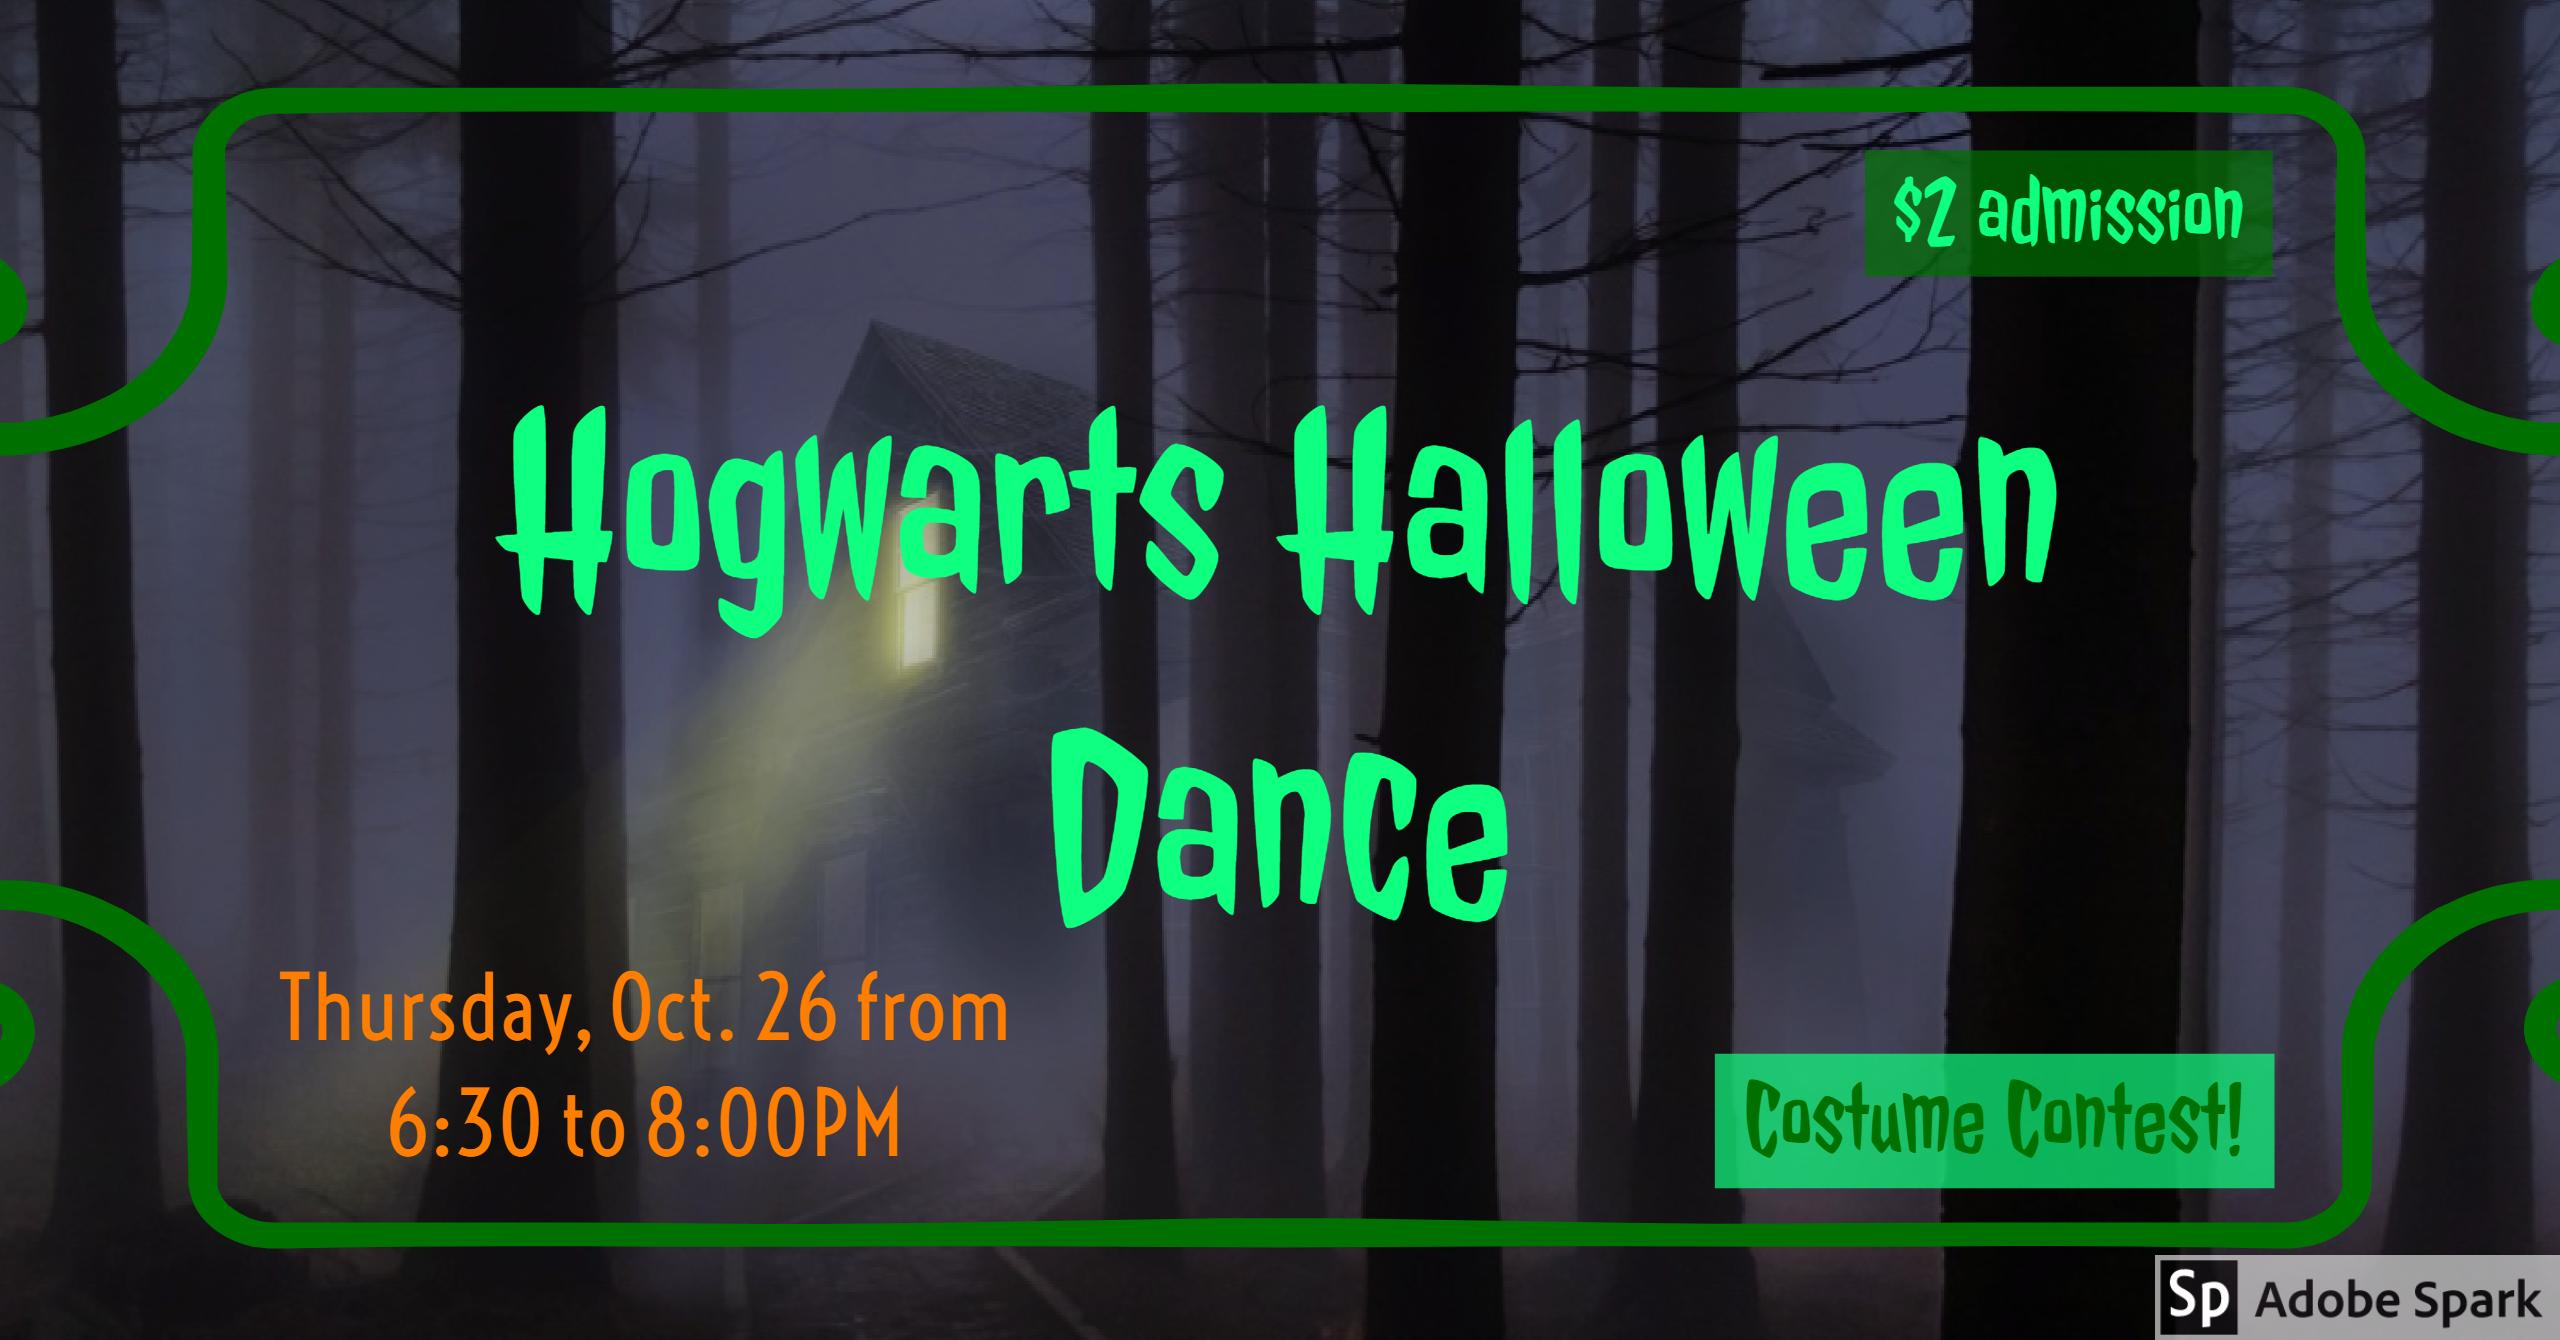 Hogwart's Halloween Dance $2 October 26th 6:30 to 8:00 PM